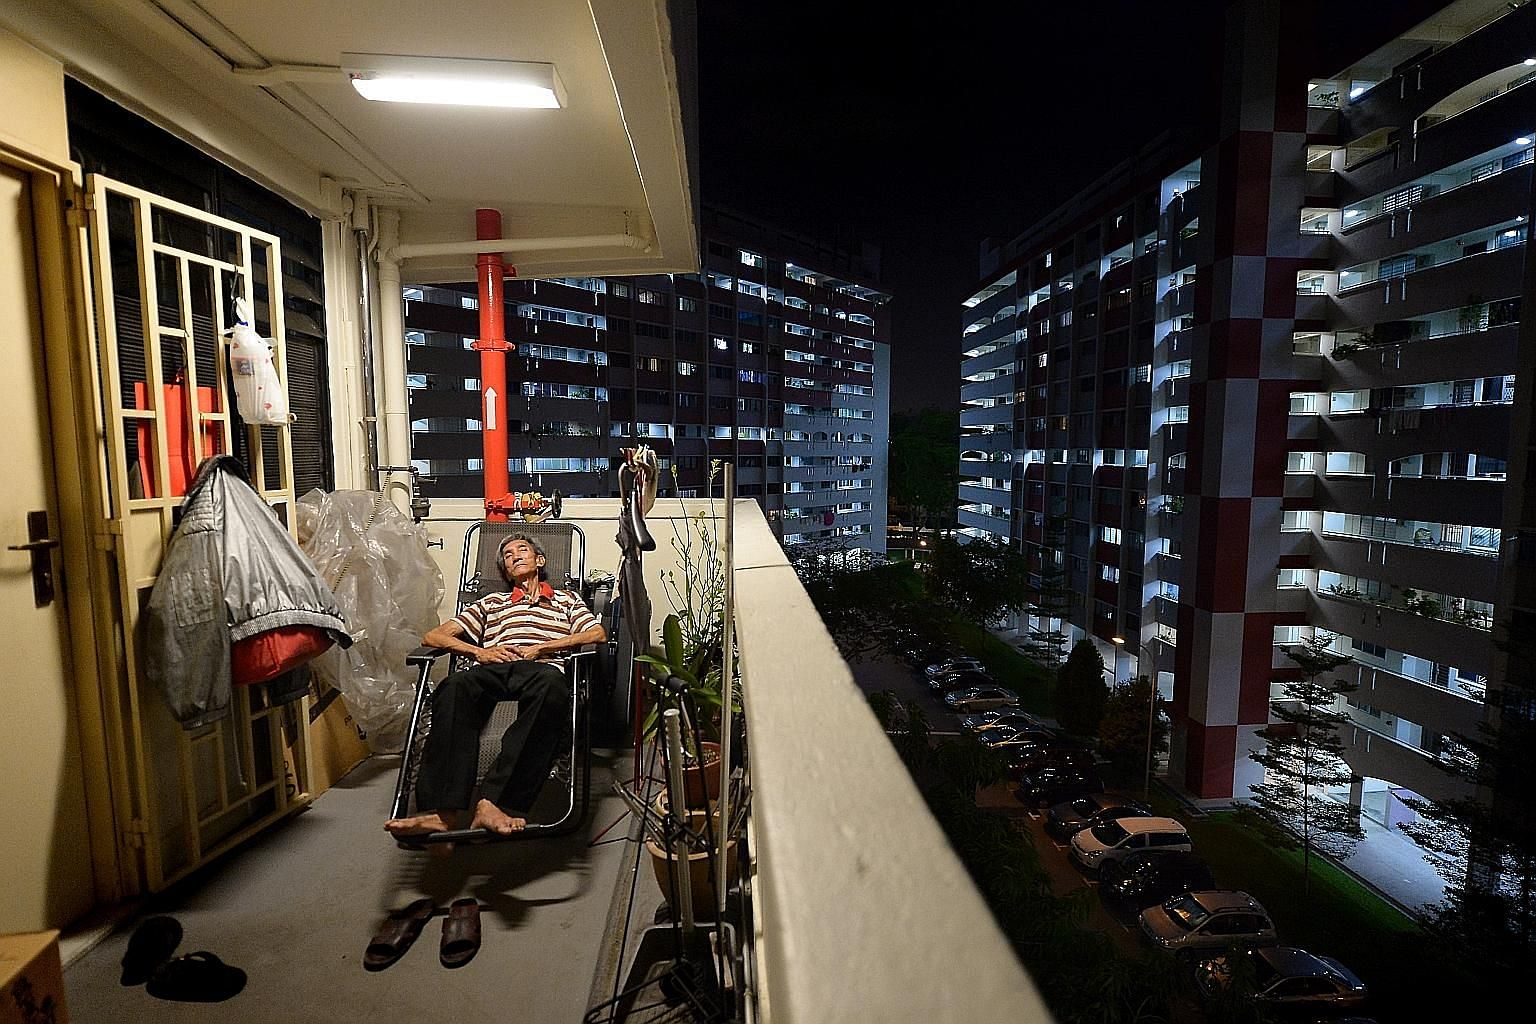 One suggestion to remedy inequality is forpublic rental flats to be mixed into owner-occupied blocks, so they are not distinguishable. That could reduce the stigma and ensure a better living environment.